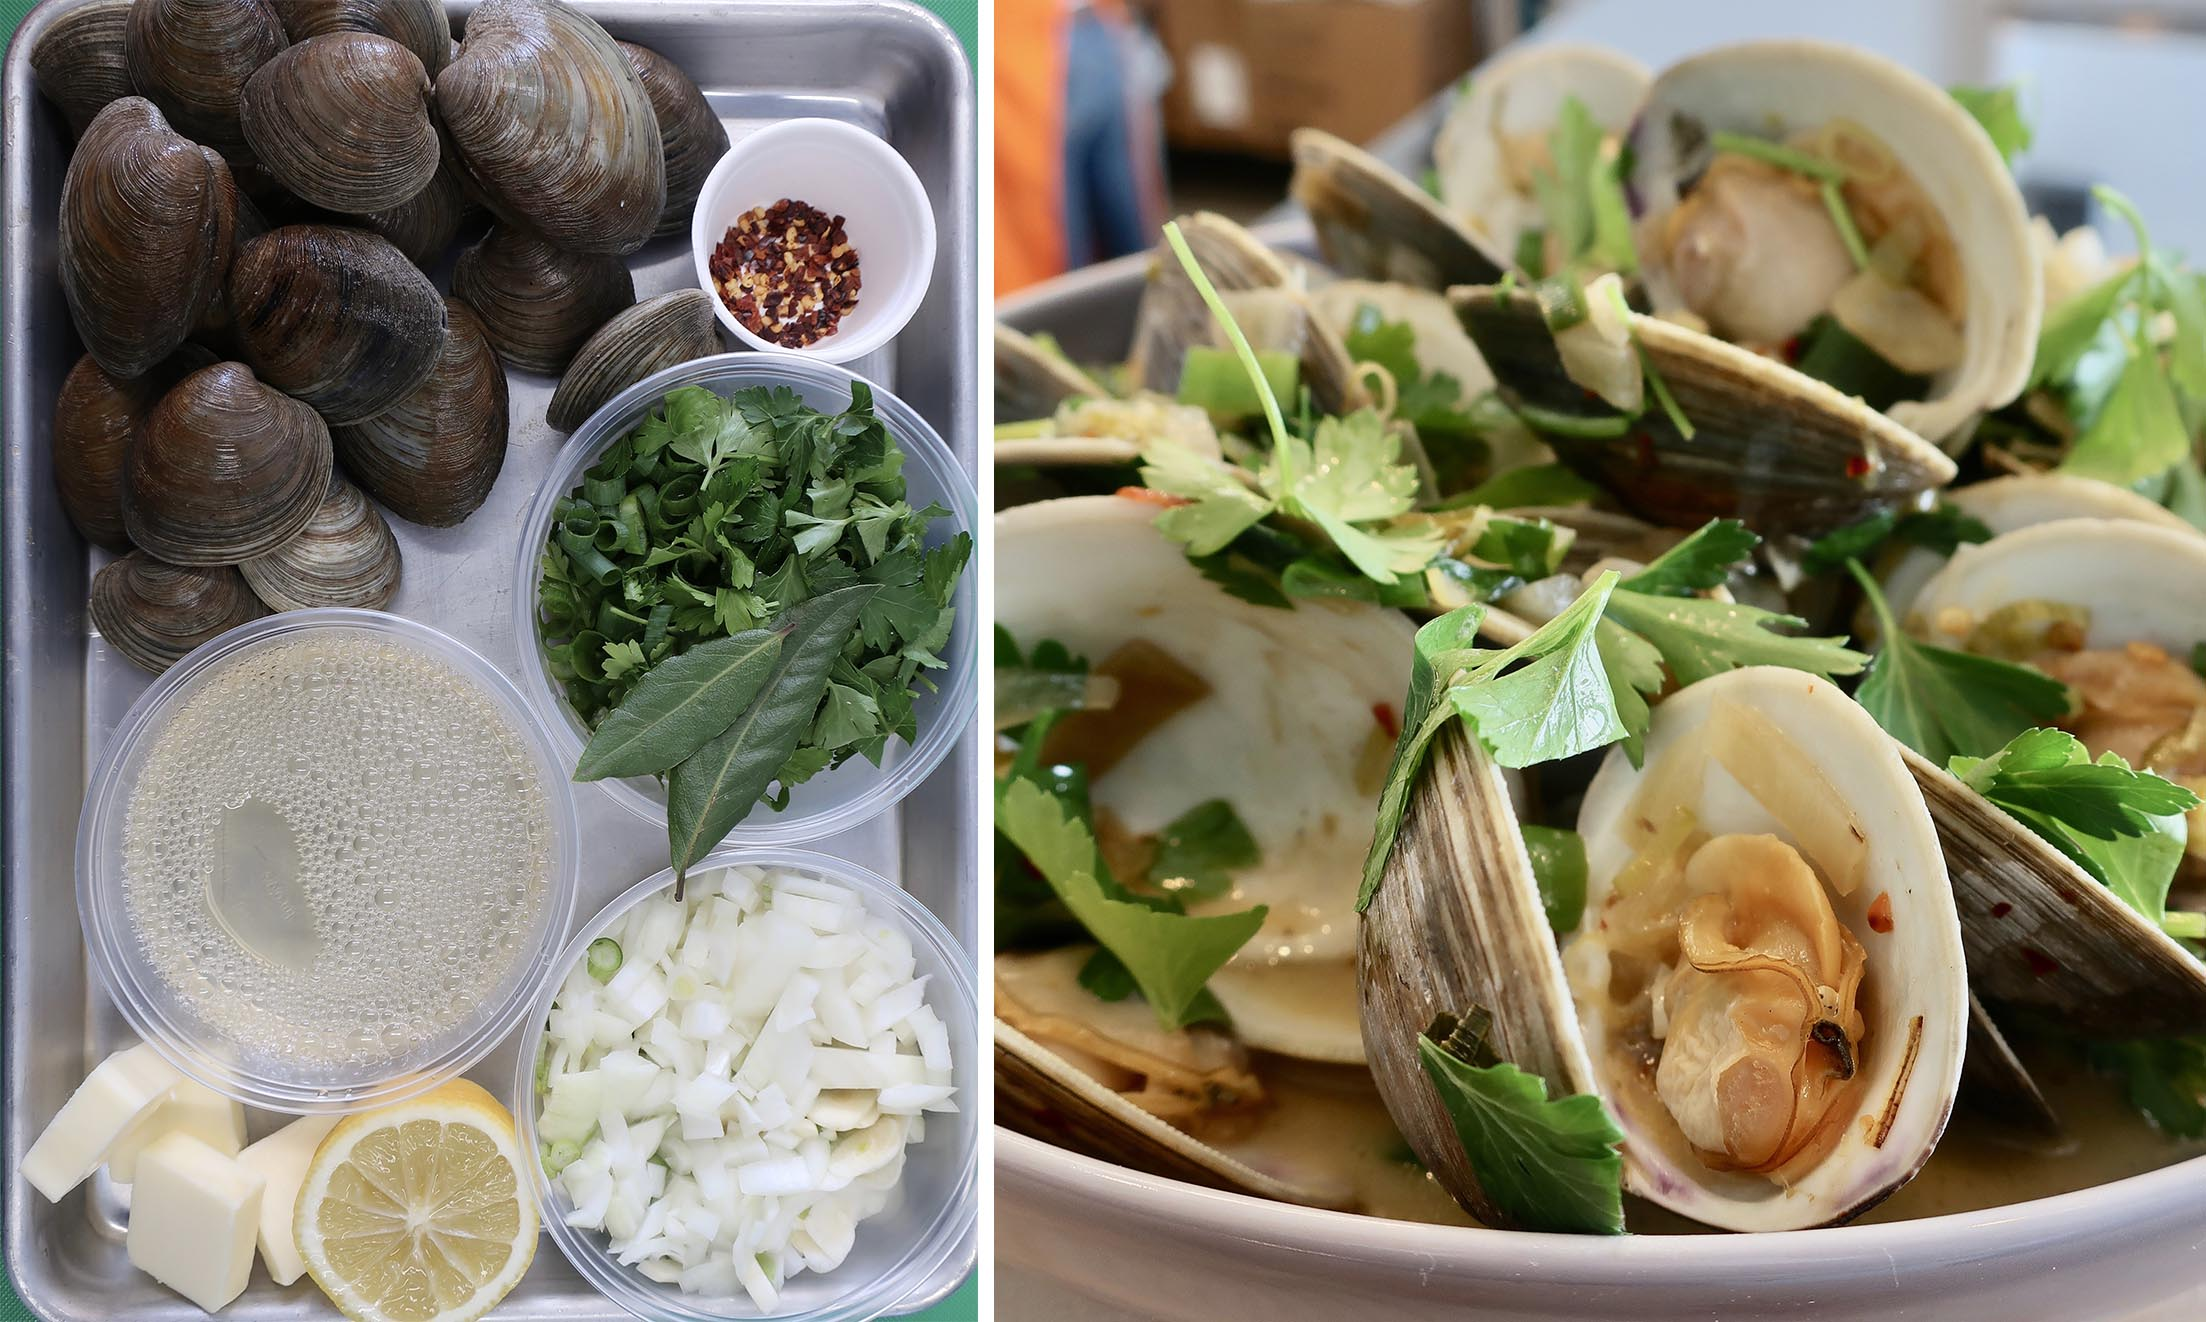 STEAMED CLAMS -